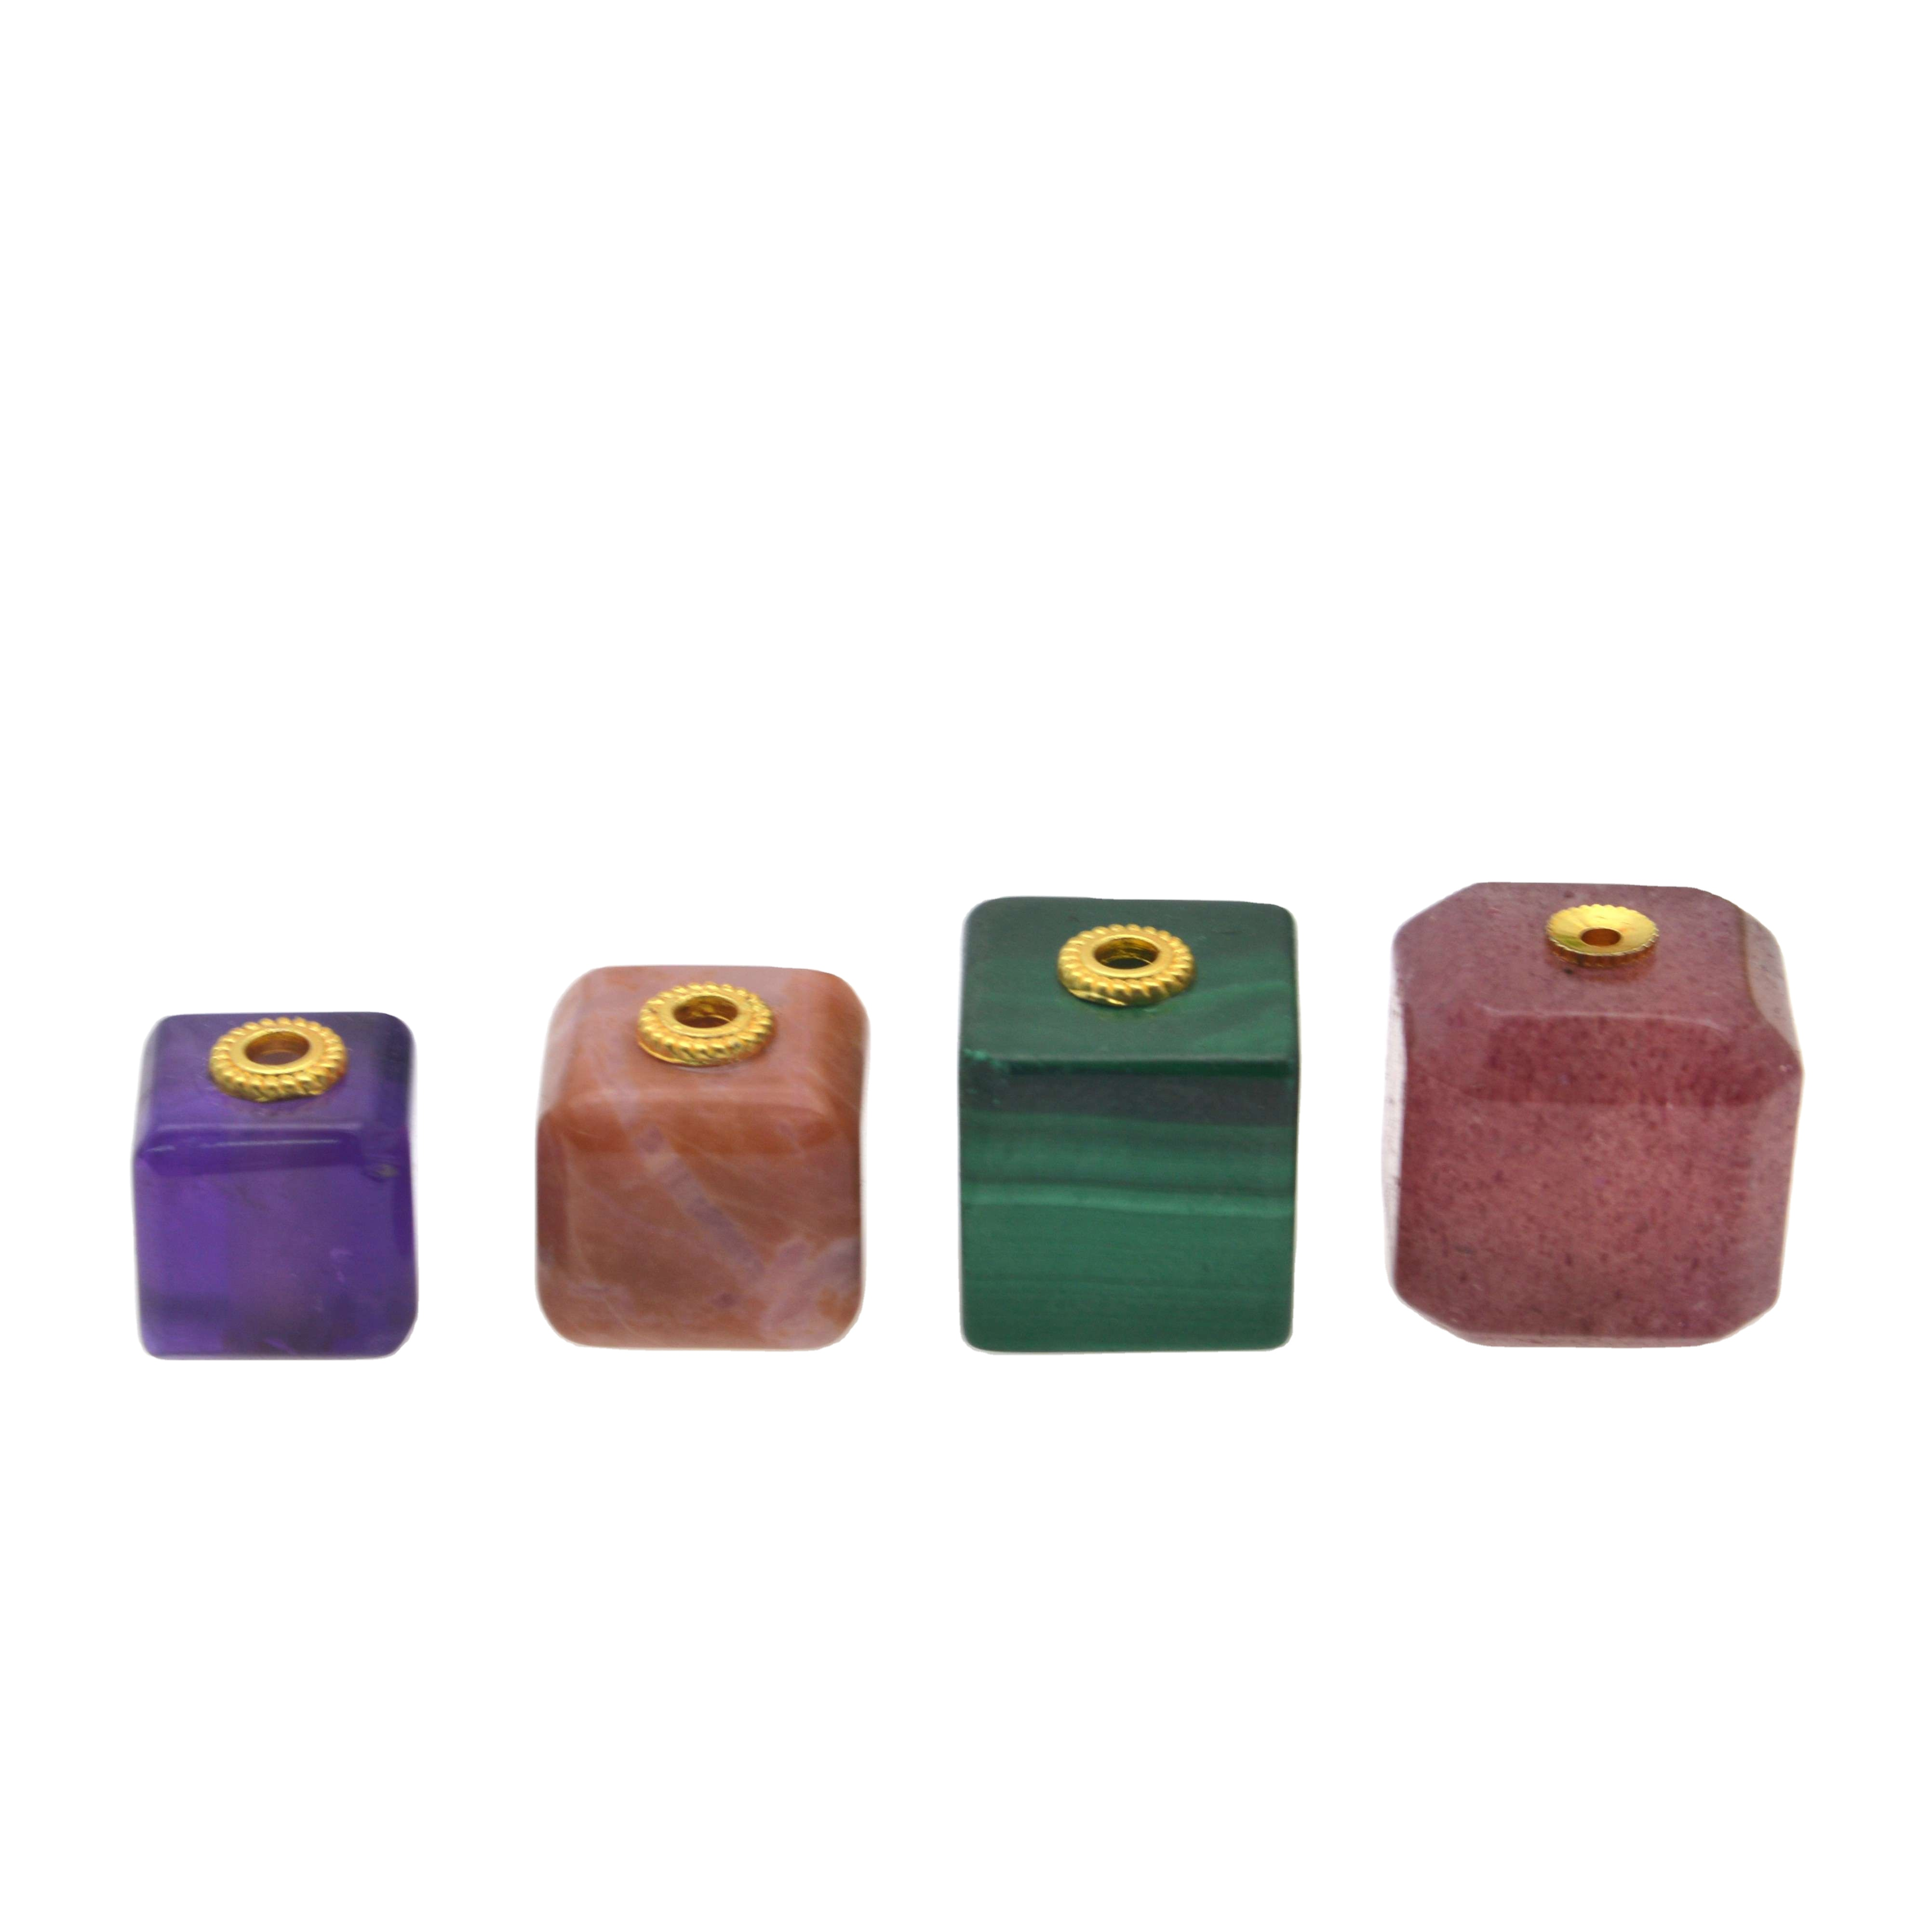 Gemstone Square Crystal Copper Beads Jewelry Findings Tool Set Ring Earring Extend Chain Jewelry Accessories For Necklace Making